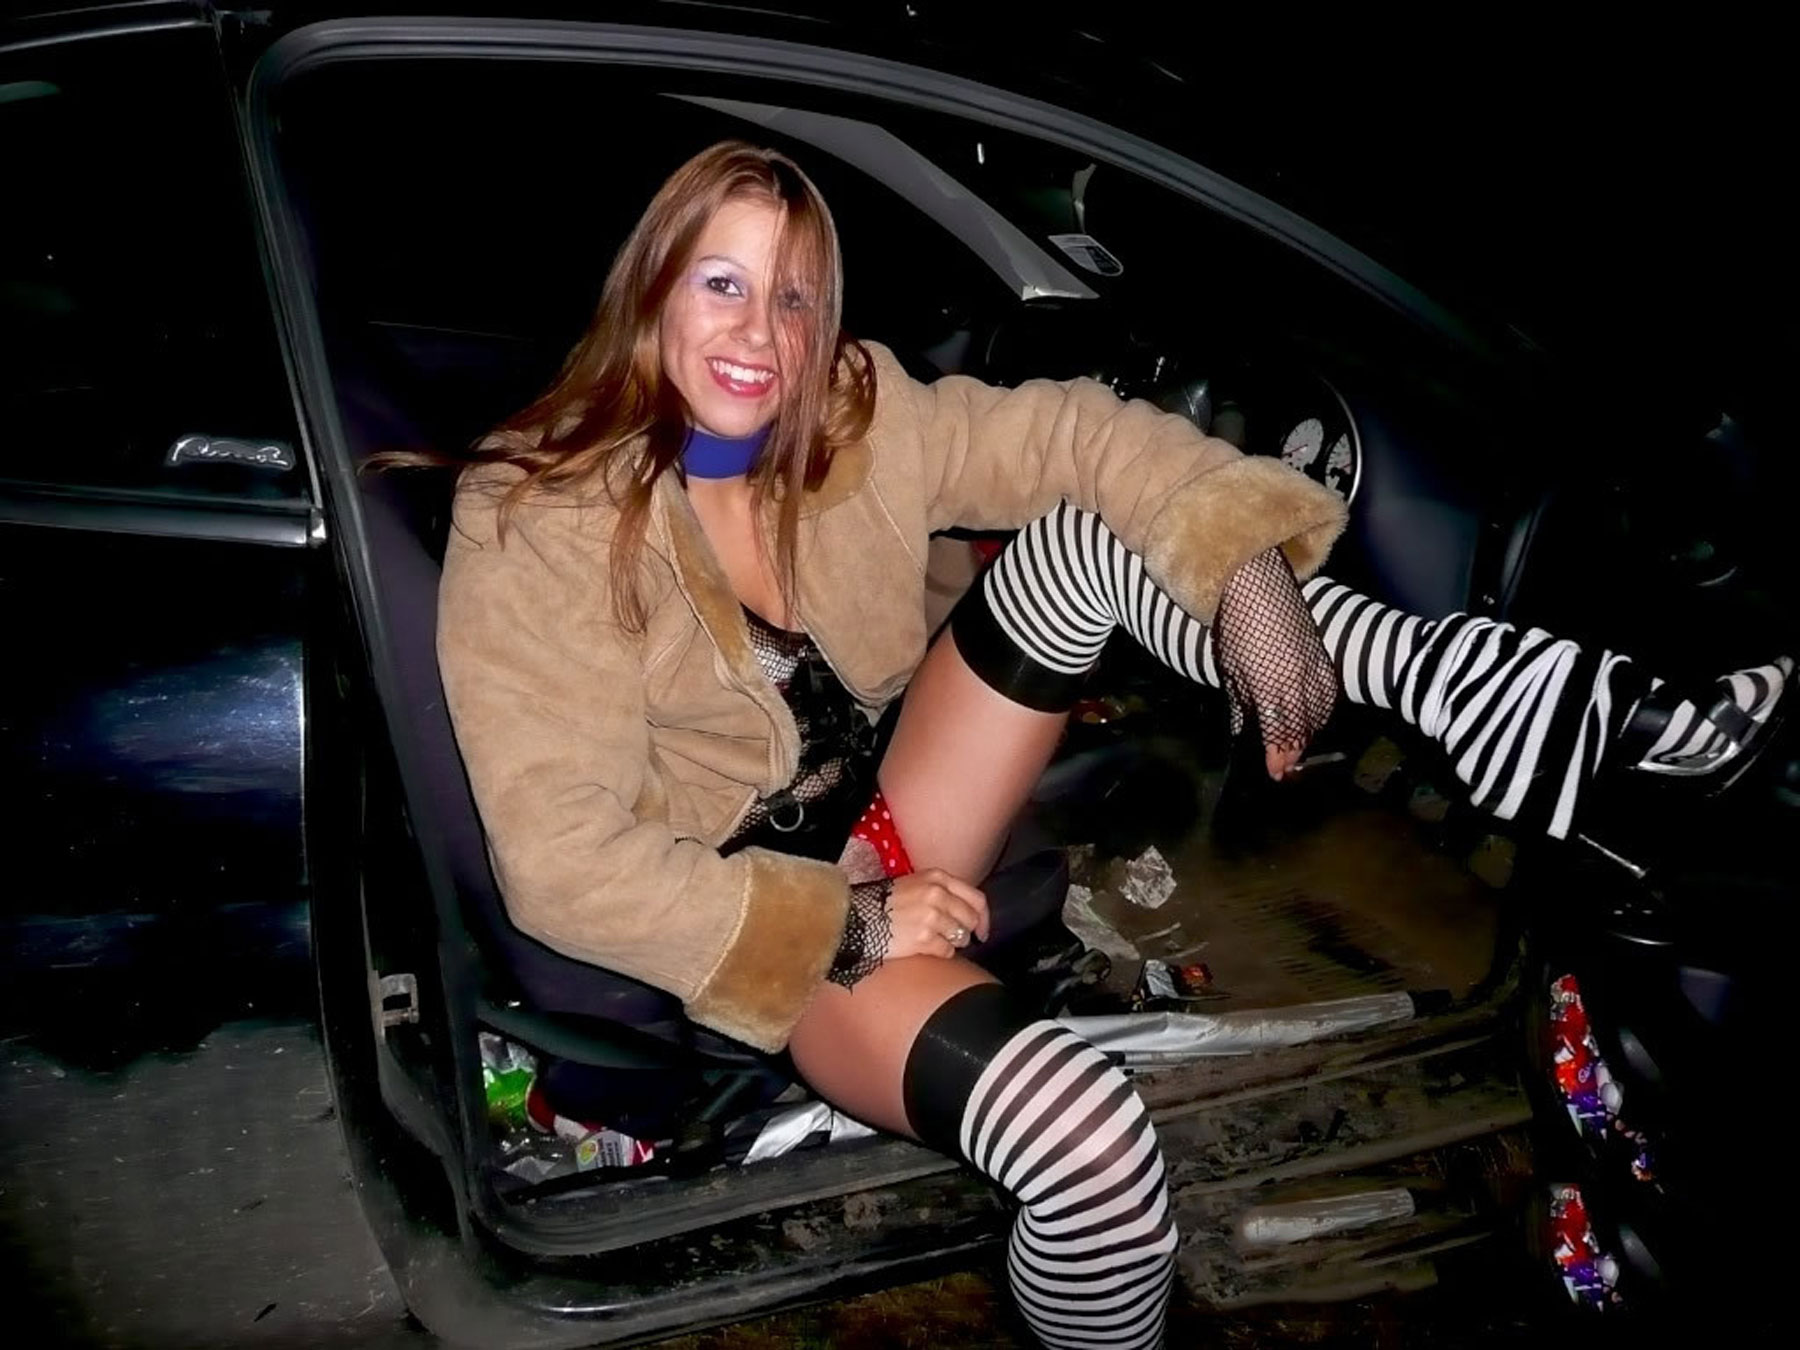 Making-Your-Dogging-Extra-Kinky